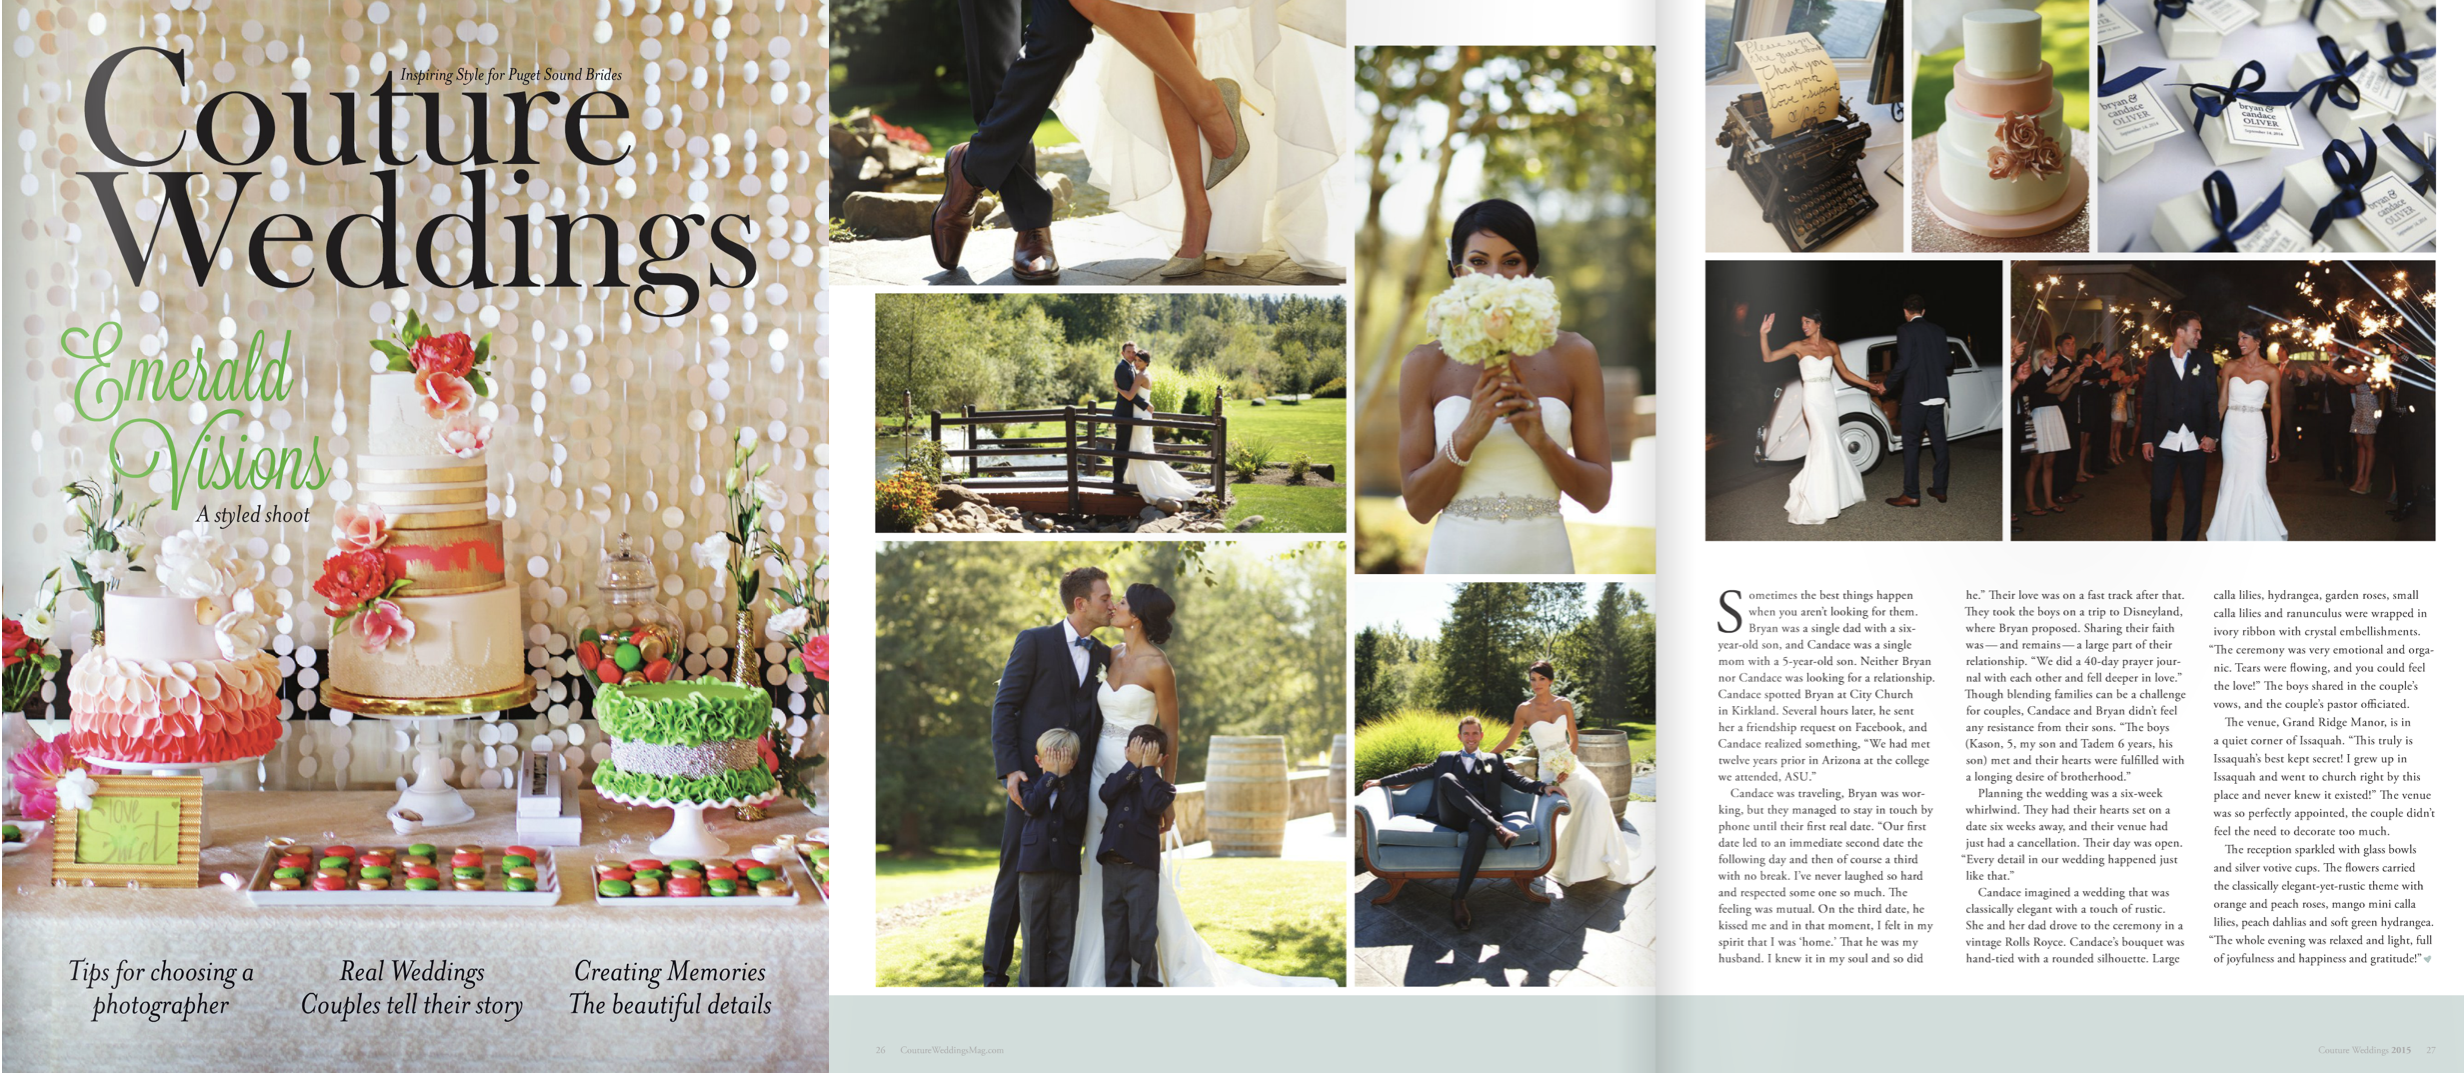 """Couture Weddings Puget Sound, 2015 (""""Real Wedding"""" feature)"""